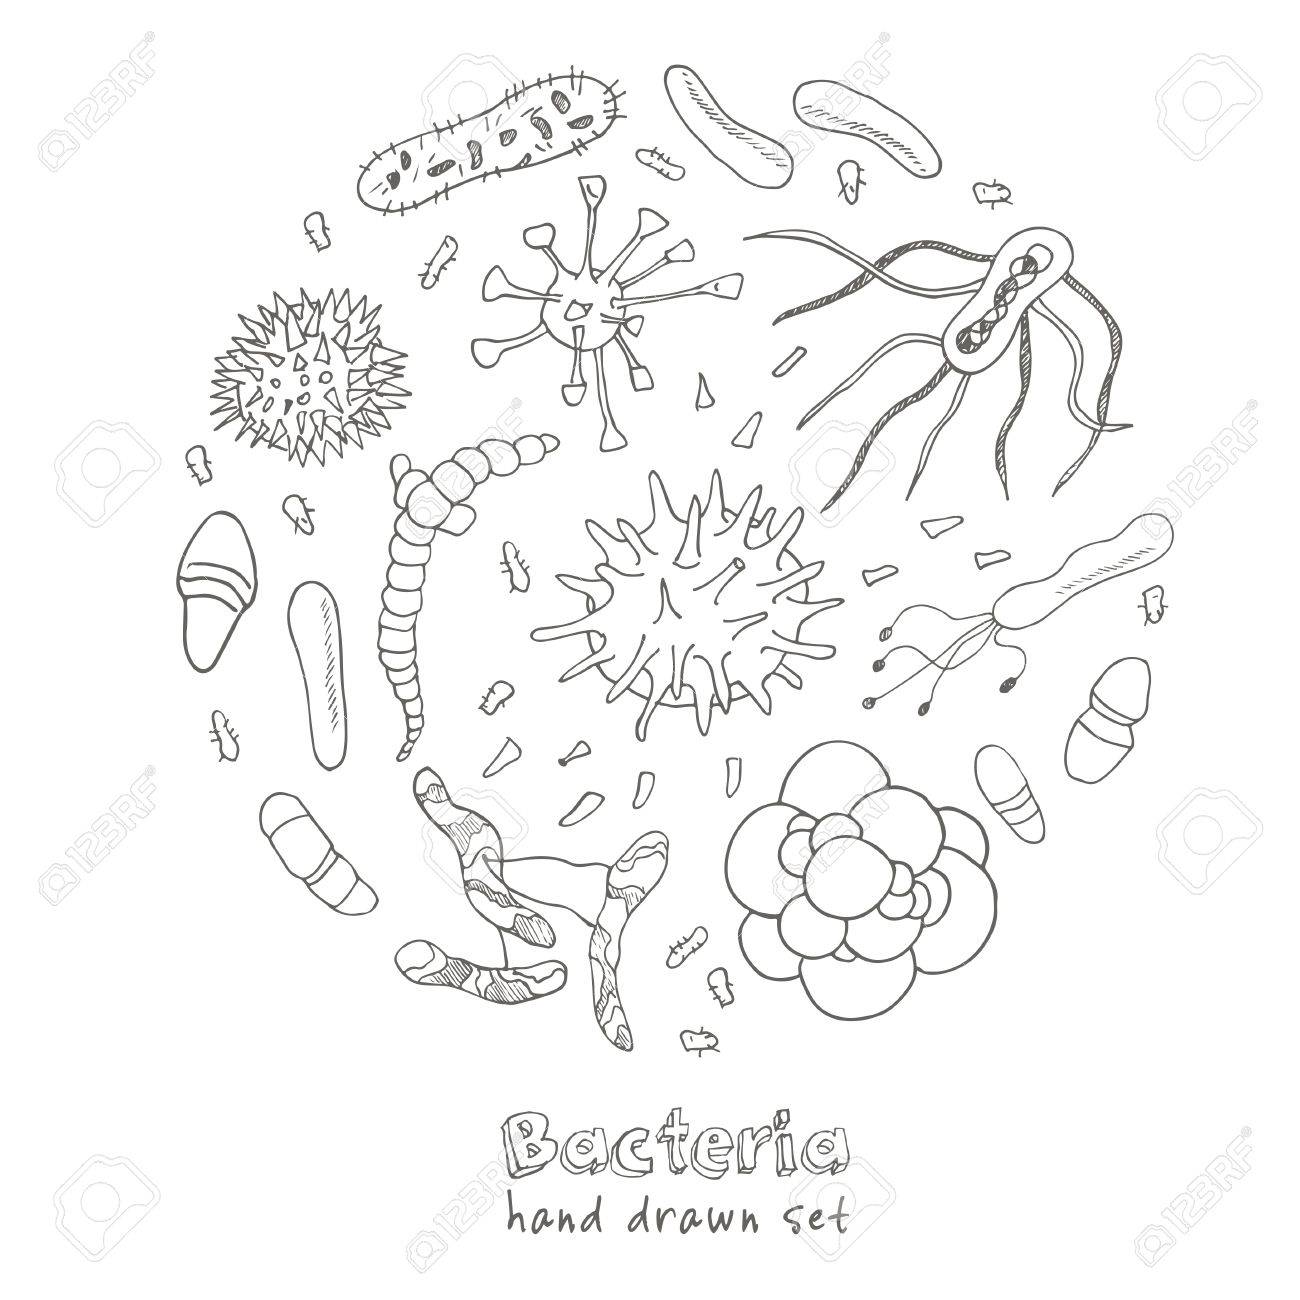 Bacteria Drawing At Getdrawings Com Free For Personal